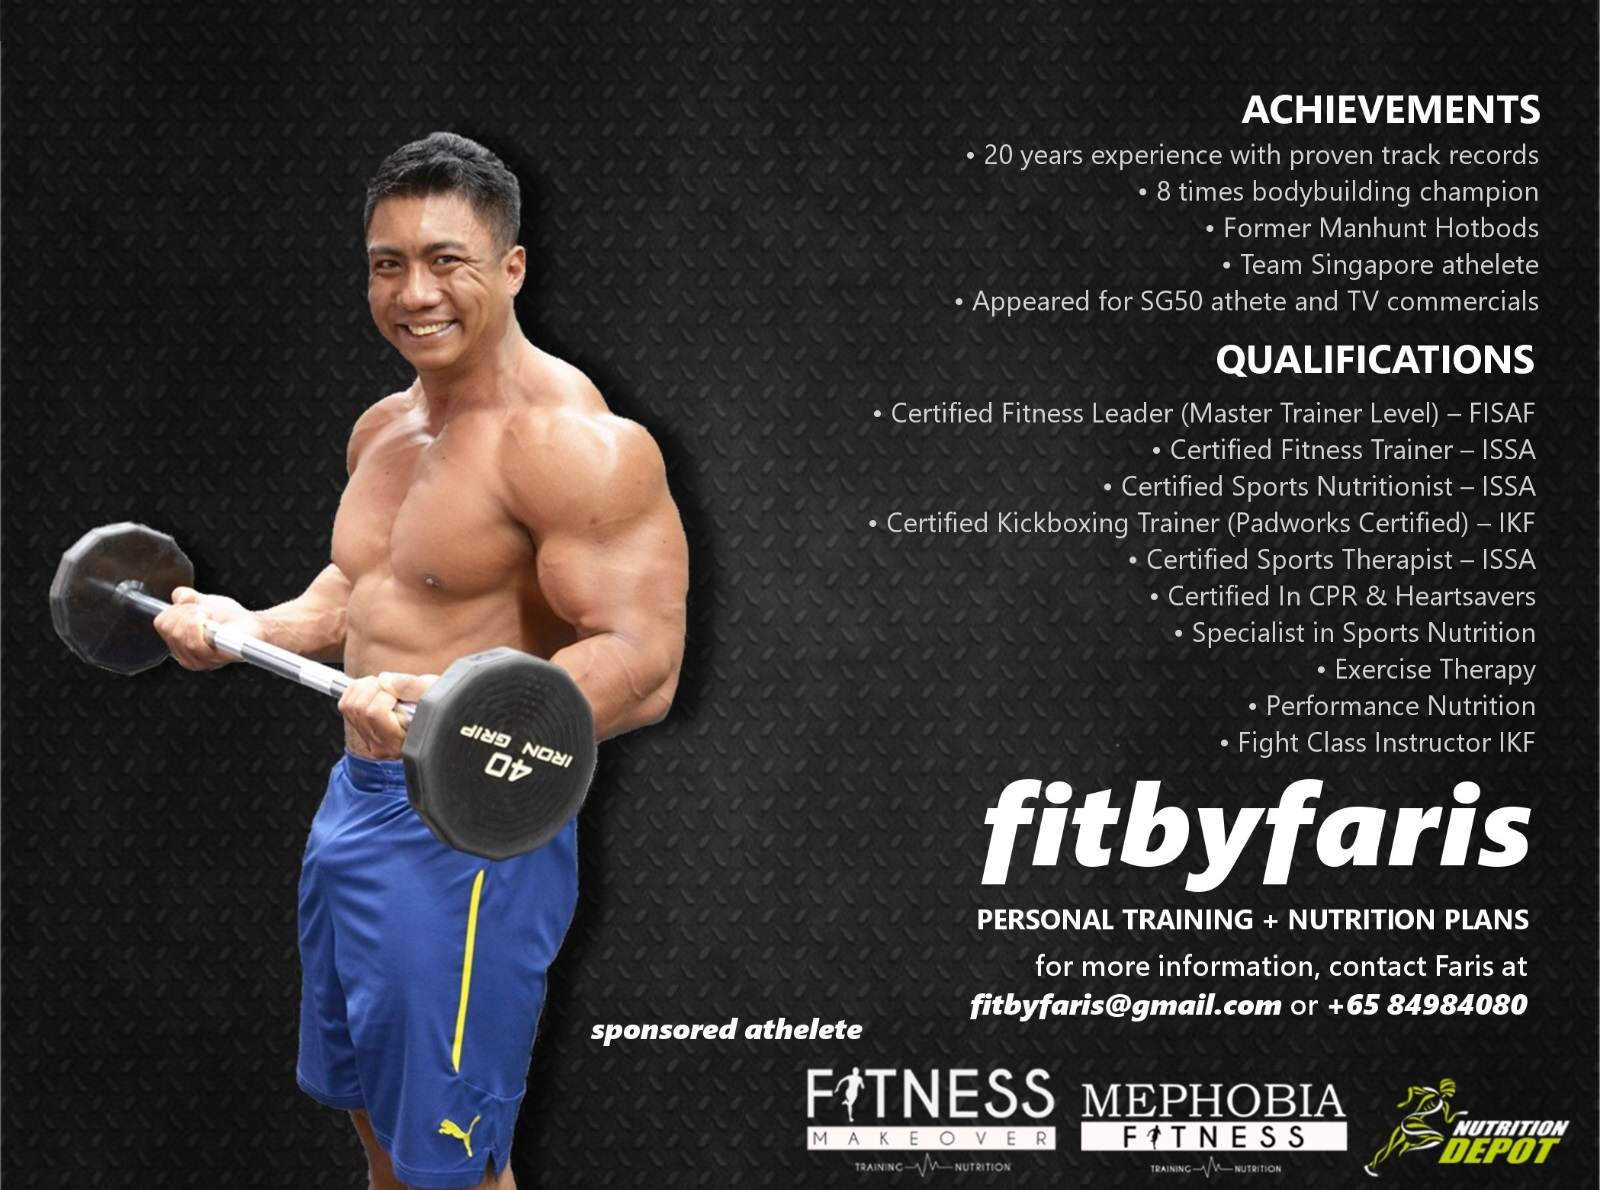 fitbyfaris profile